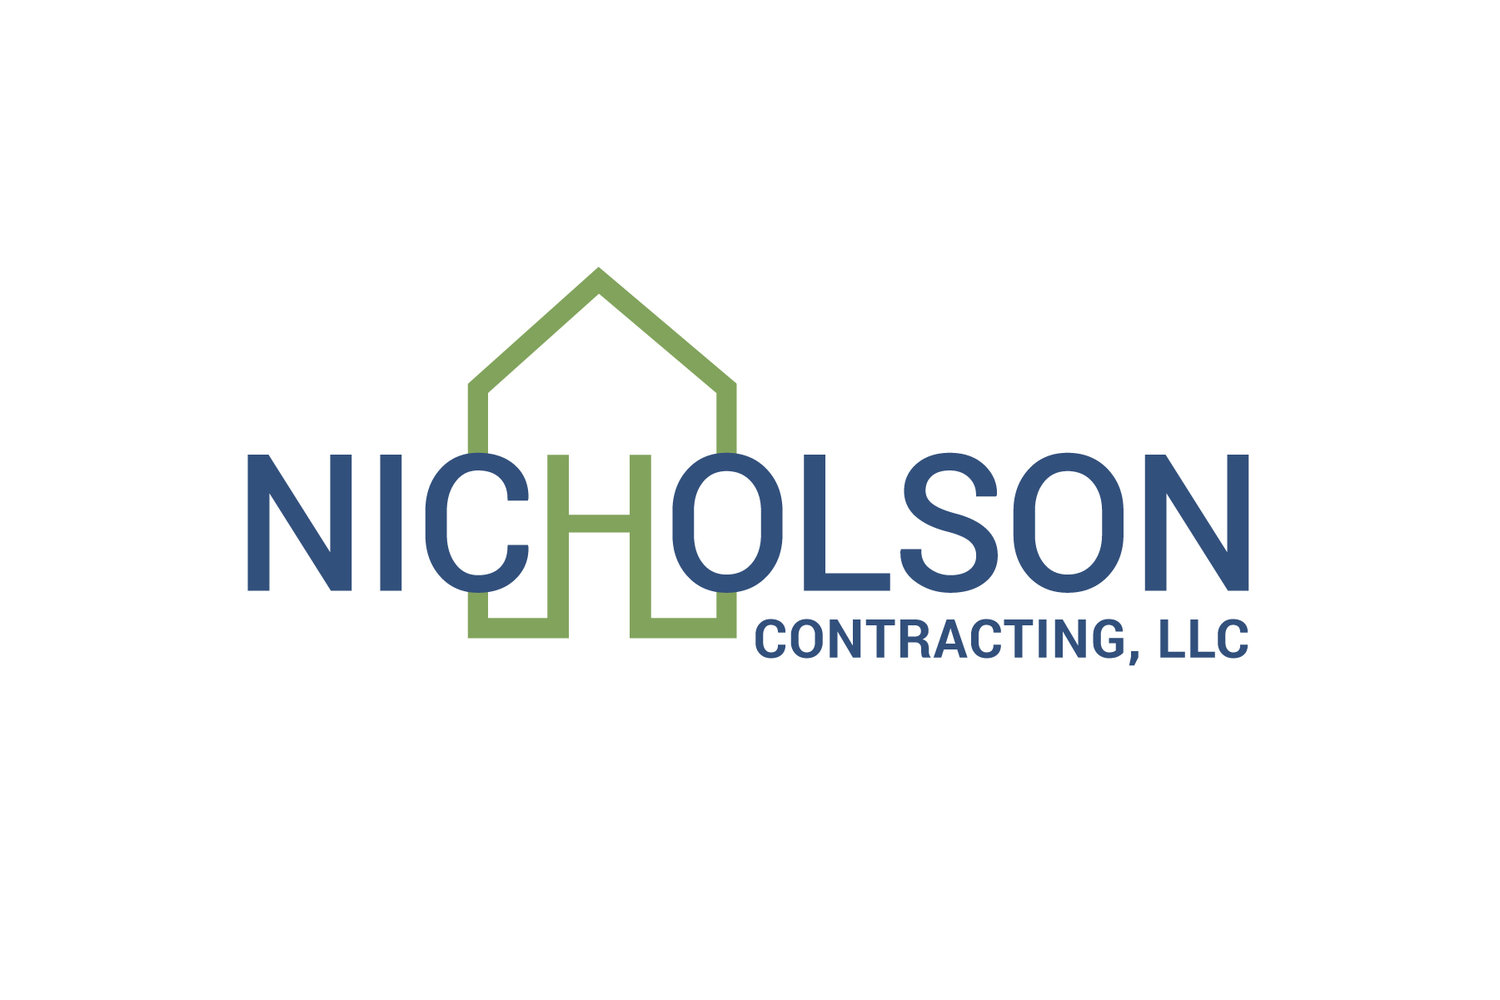 Nicholson+Contracting,+LLC_FINAL+LOGO_rgb-01.jpg